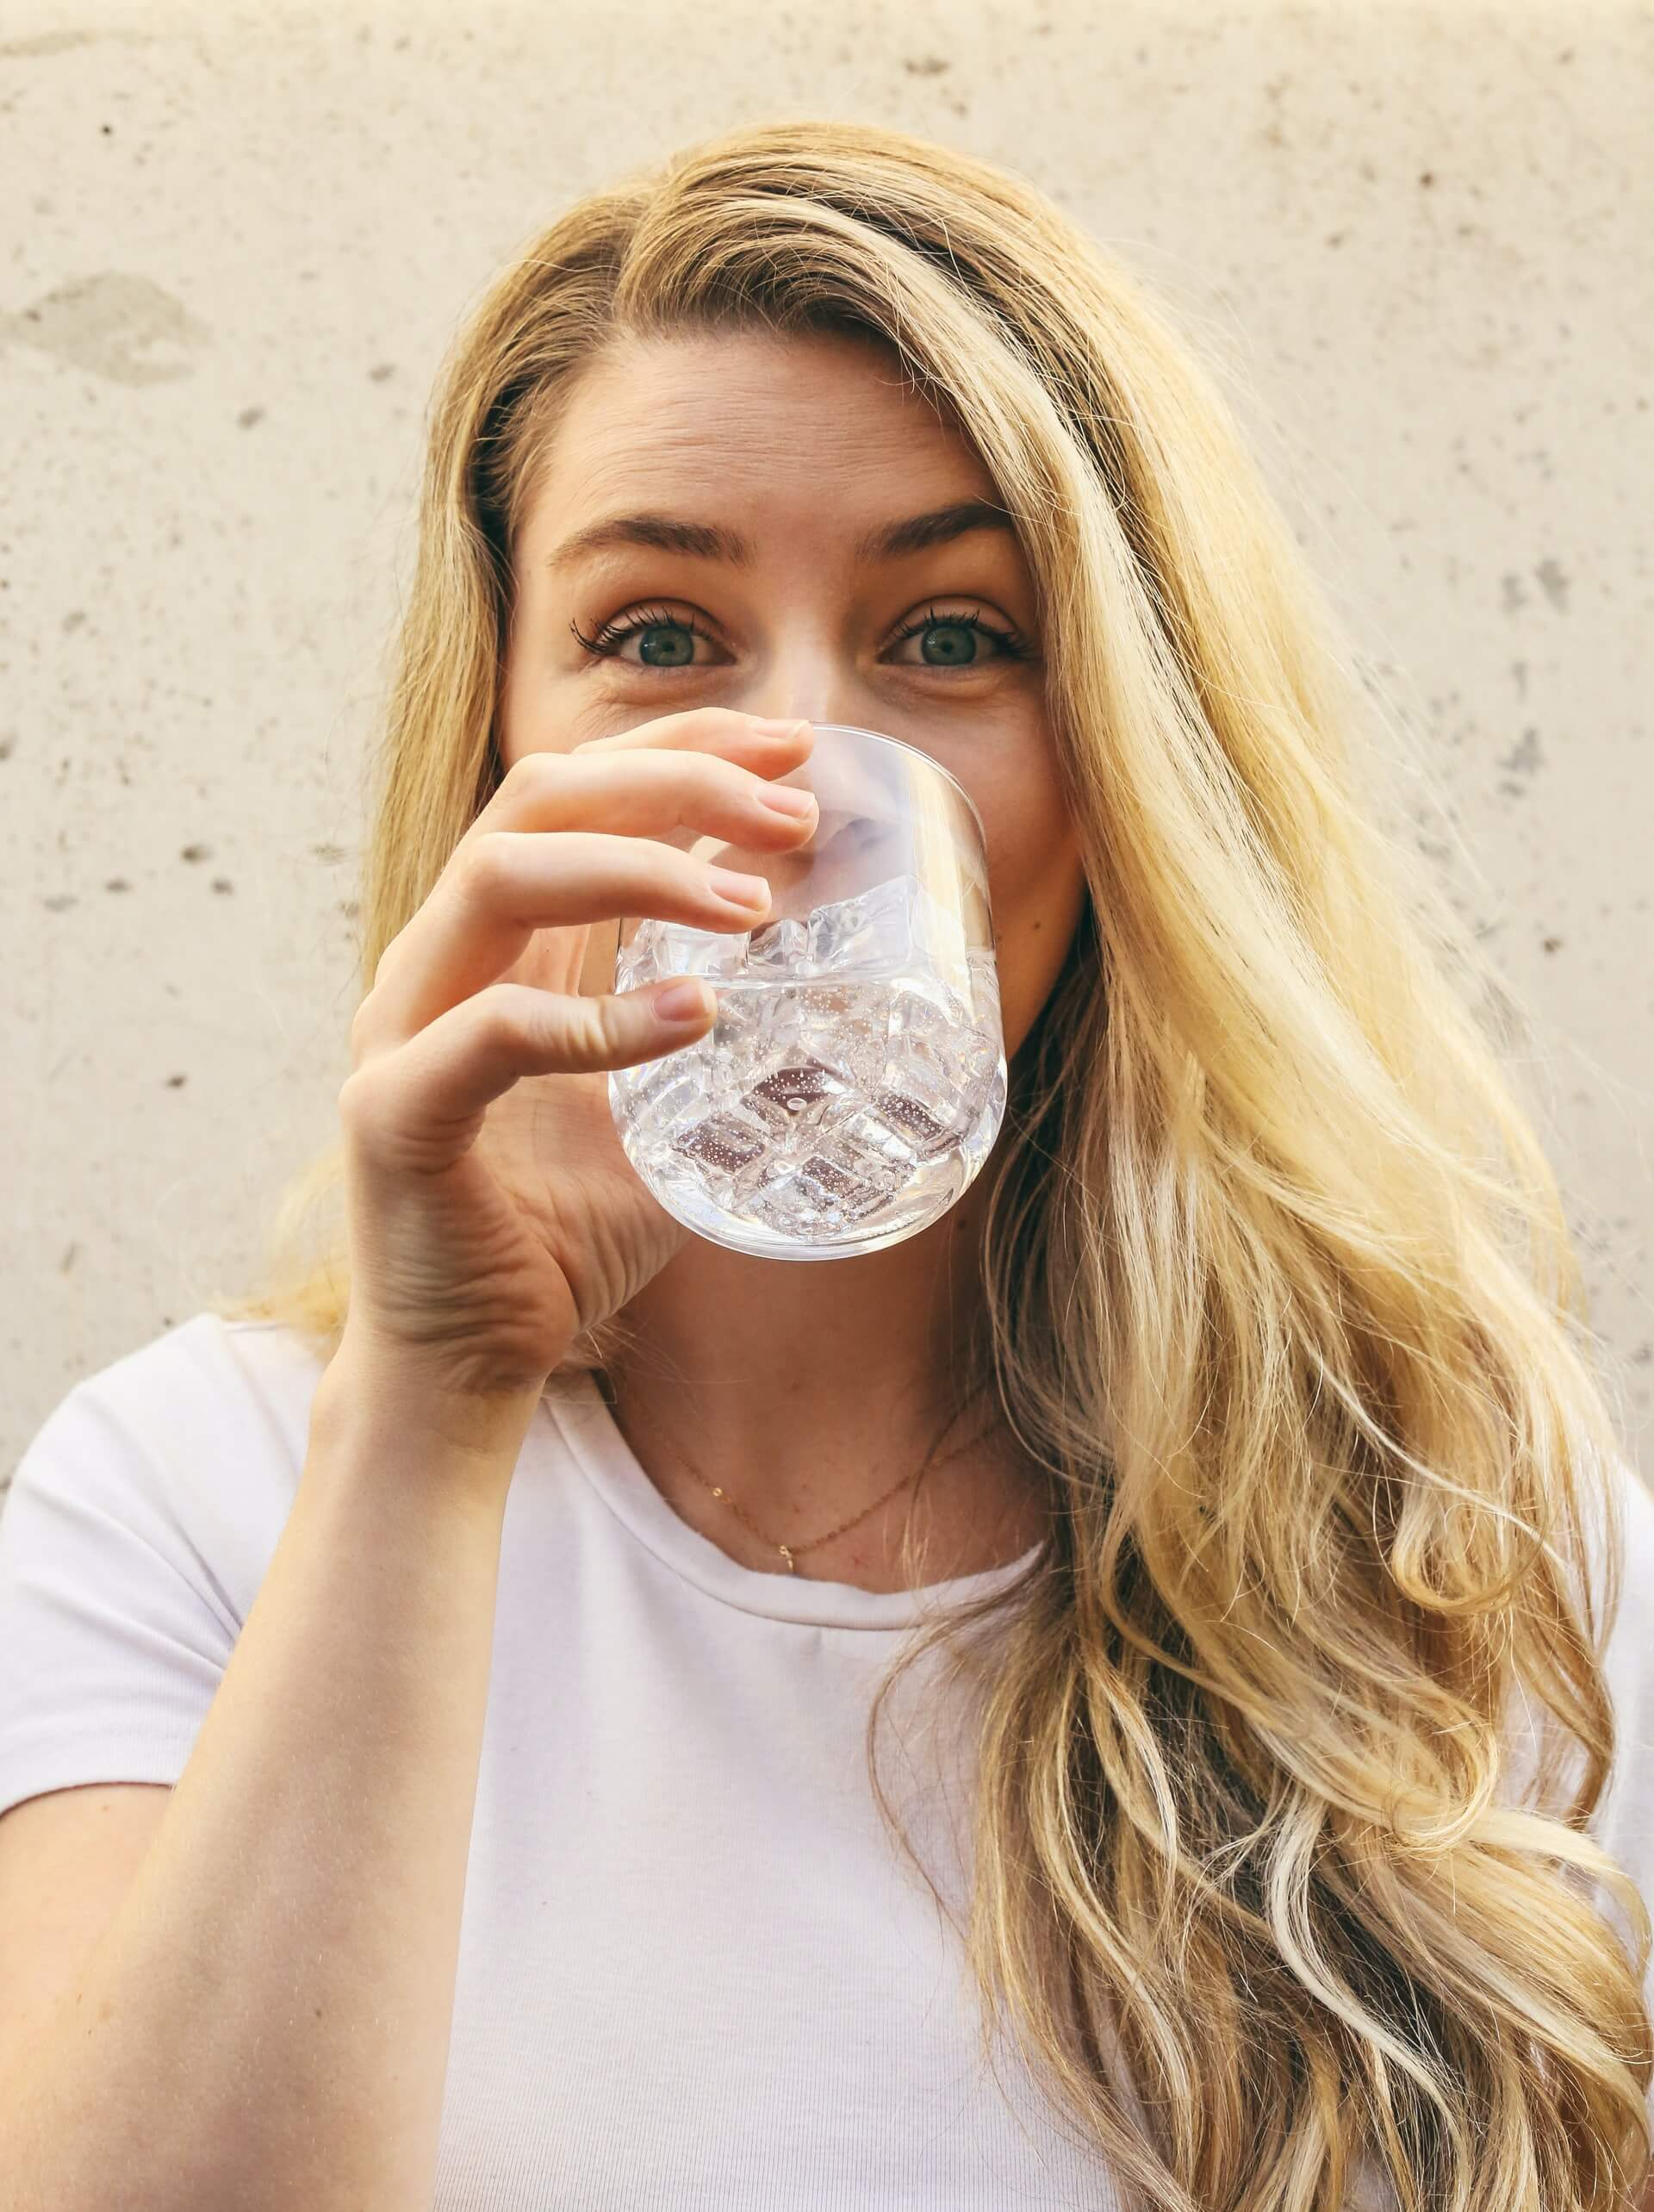 woman blond hair wearing white top drinking water with ice cubes from glass